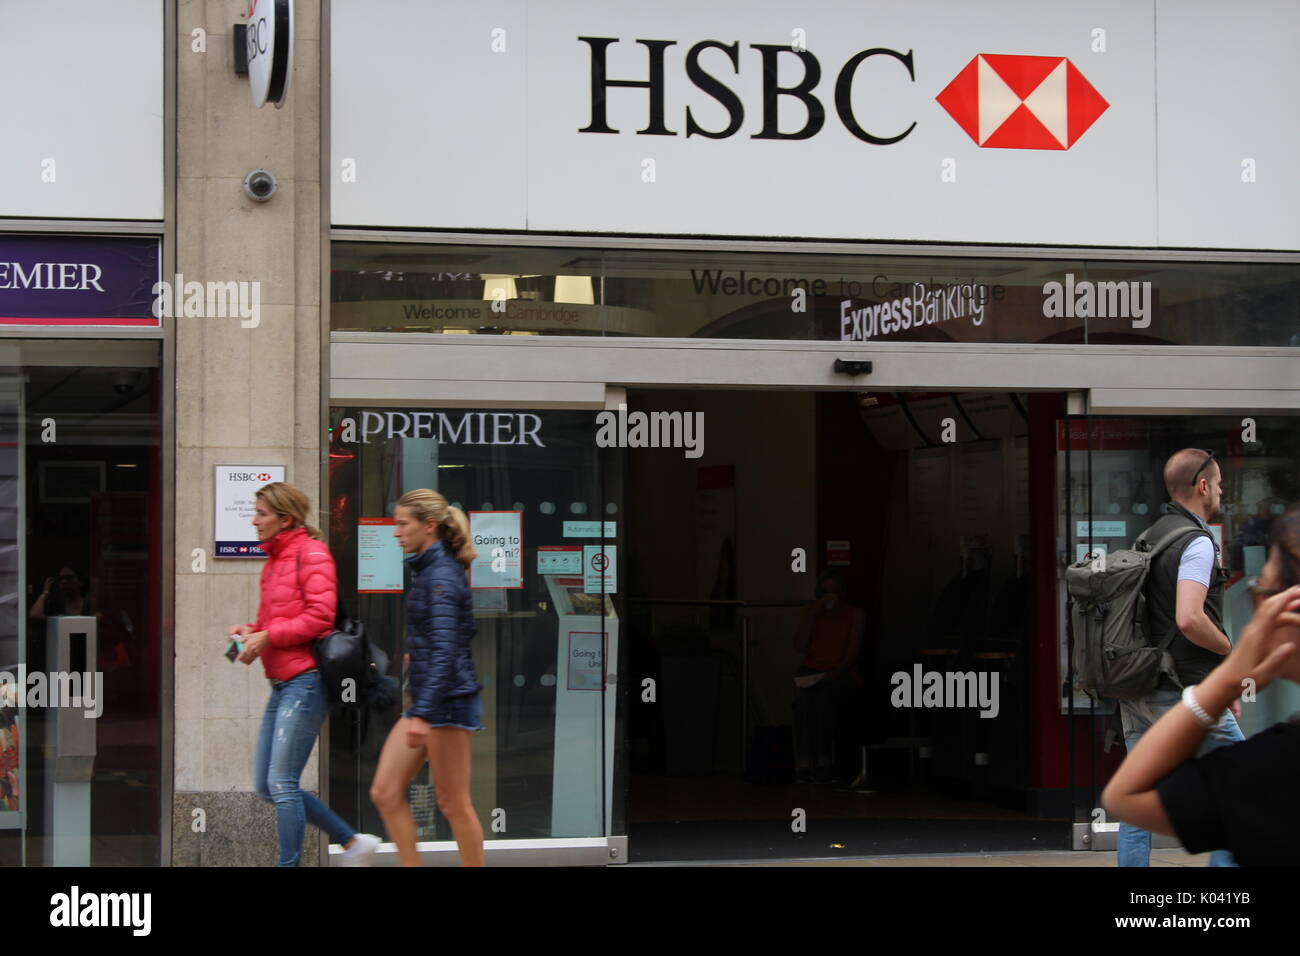 HSBC bank in cambridge Stock Photo: 154982671 - Alamy